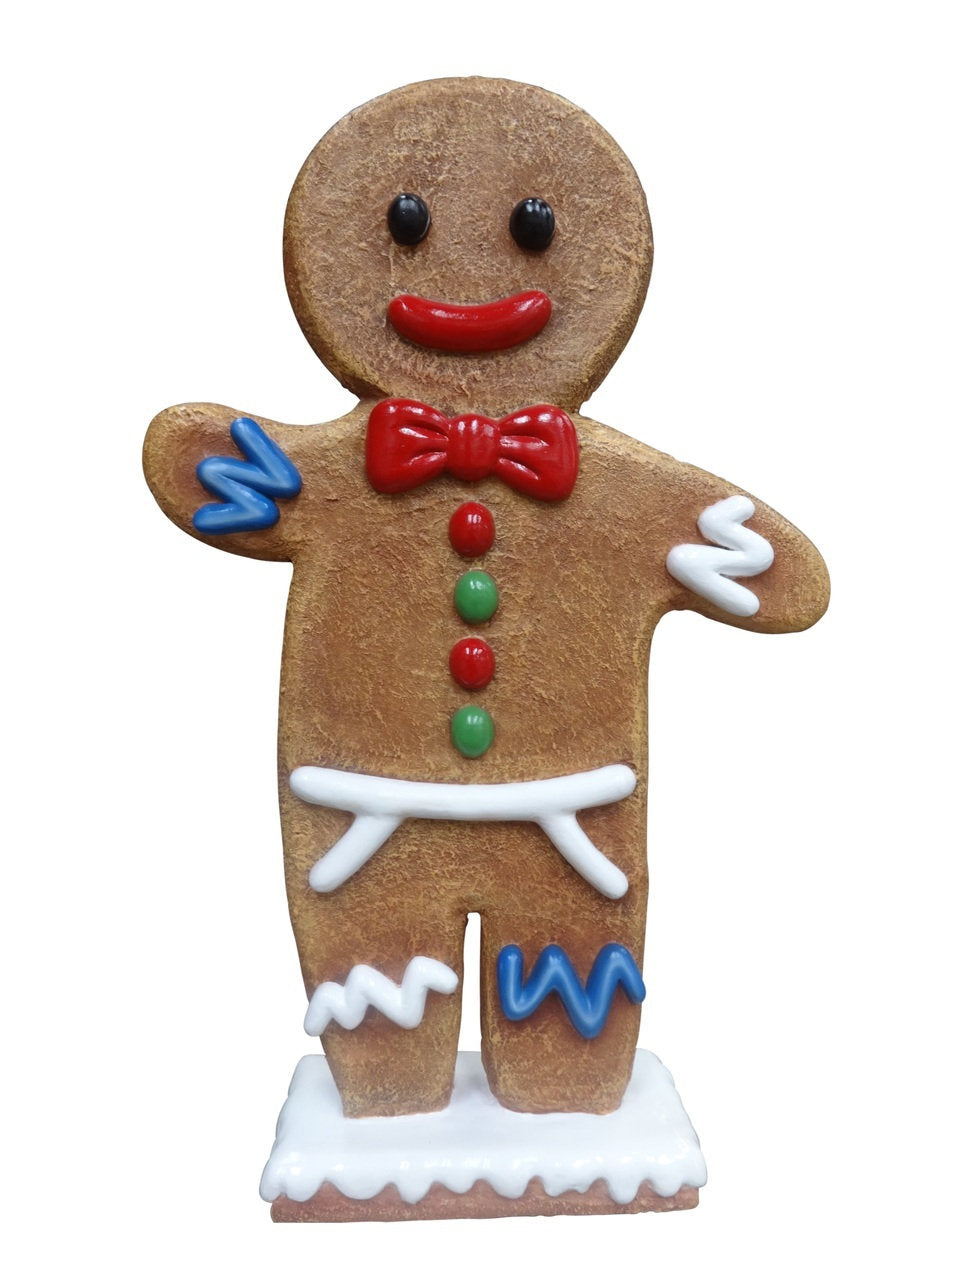 Gingerbread Papa Cookie Small Display Prop Decor Statue - LM Treasures Prop Rentals